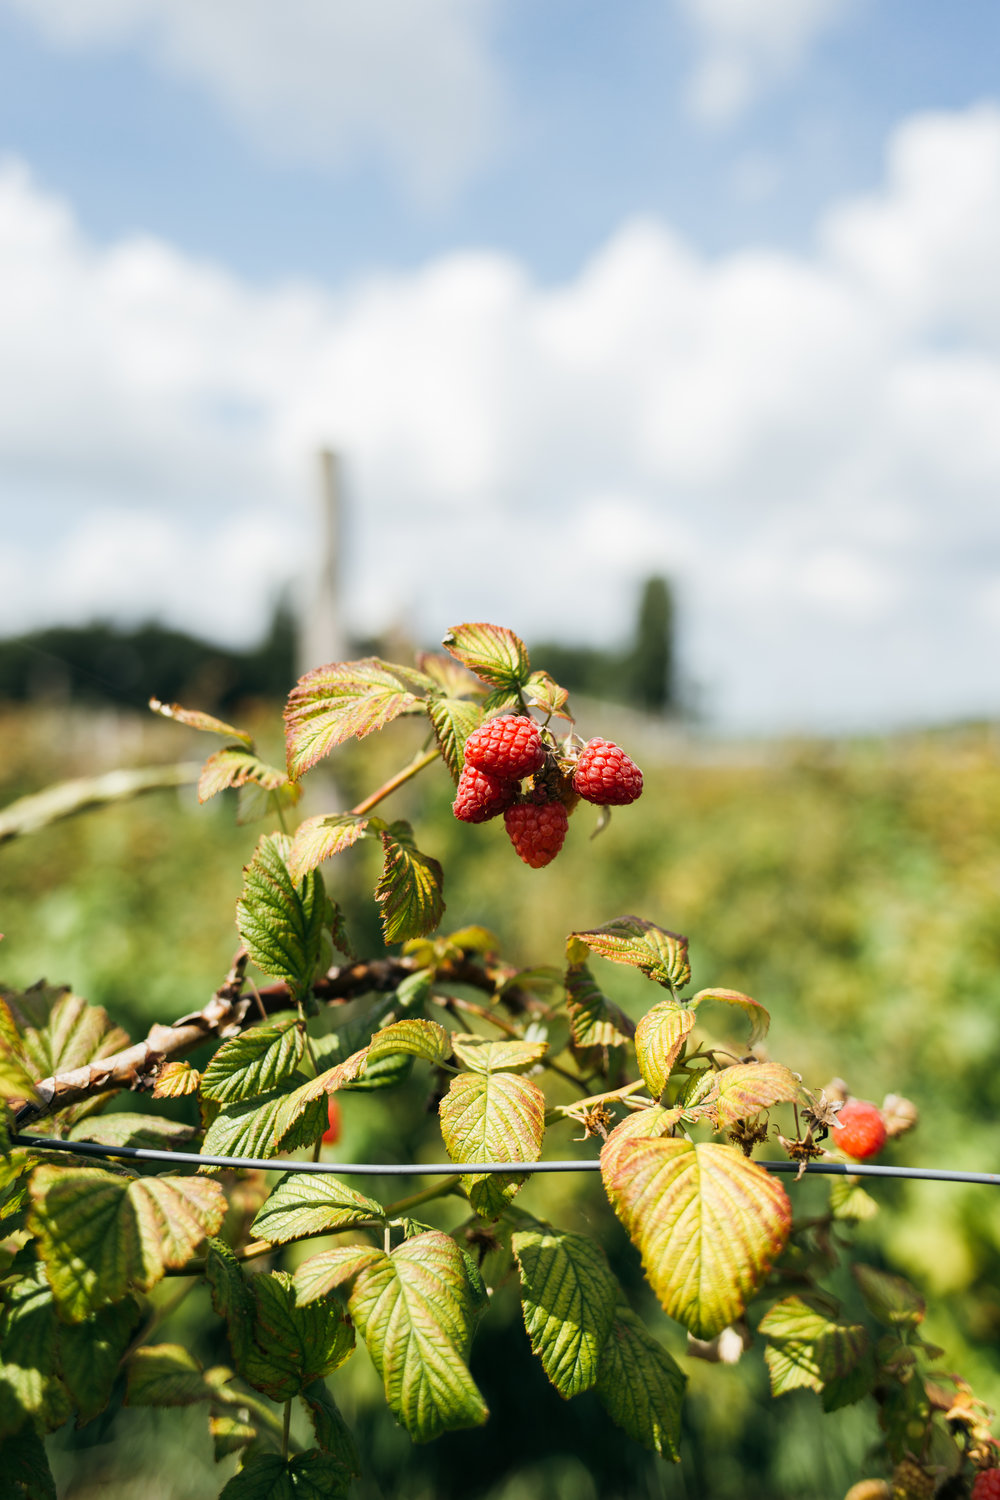 Berry picking in Amsterdam